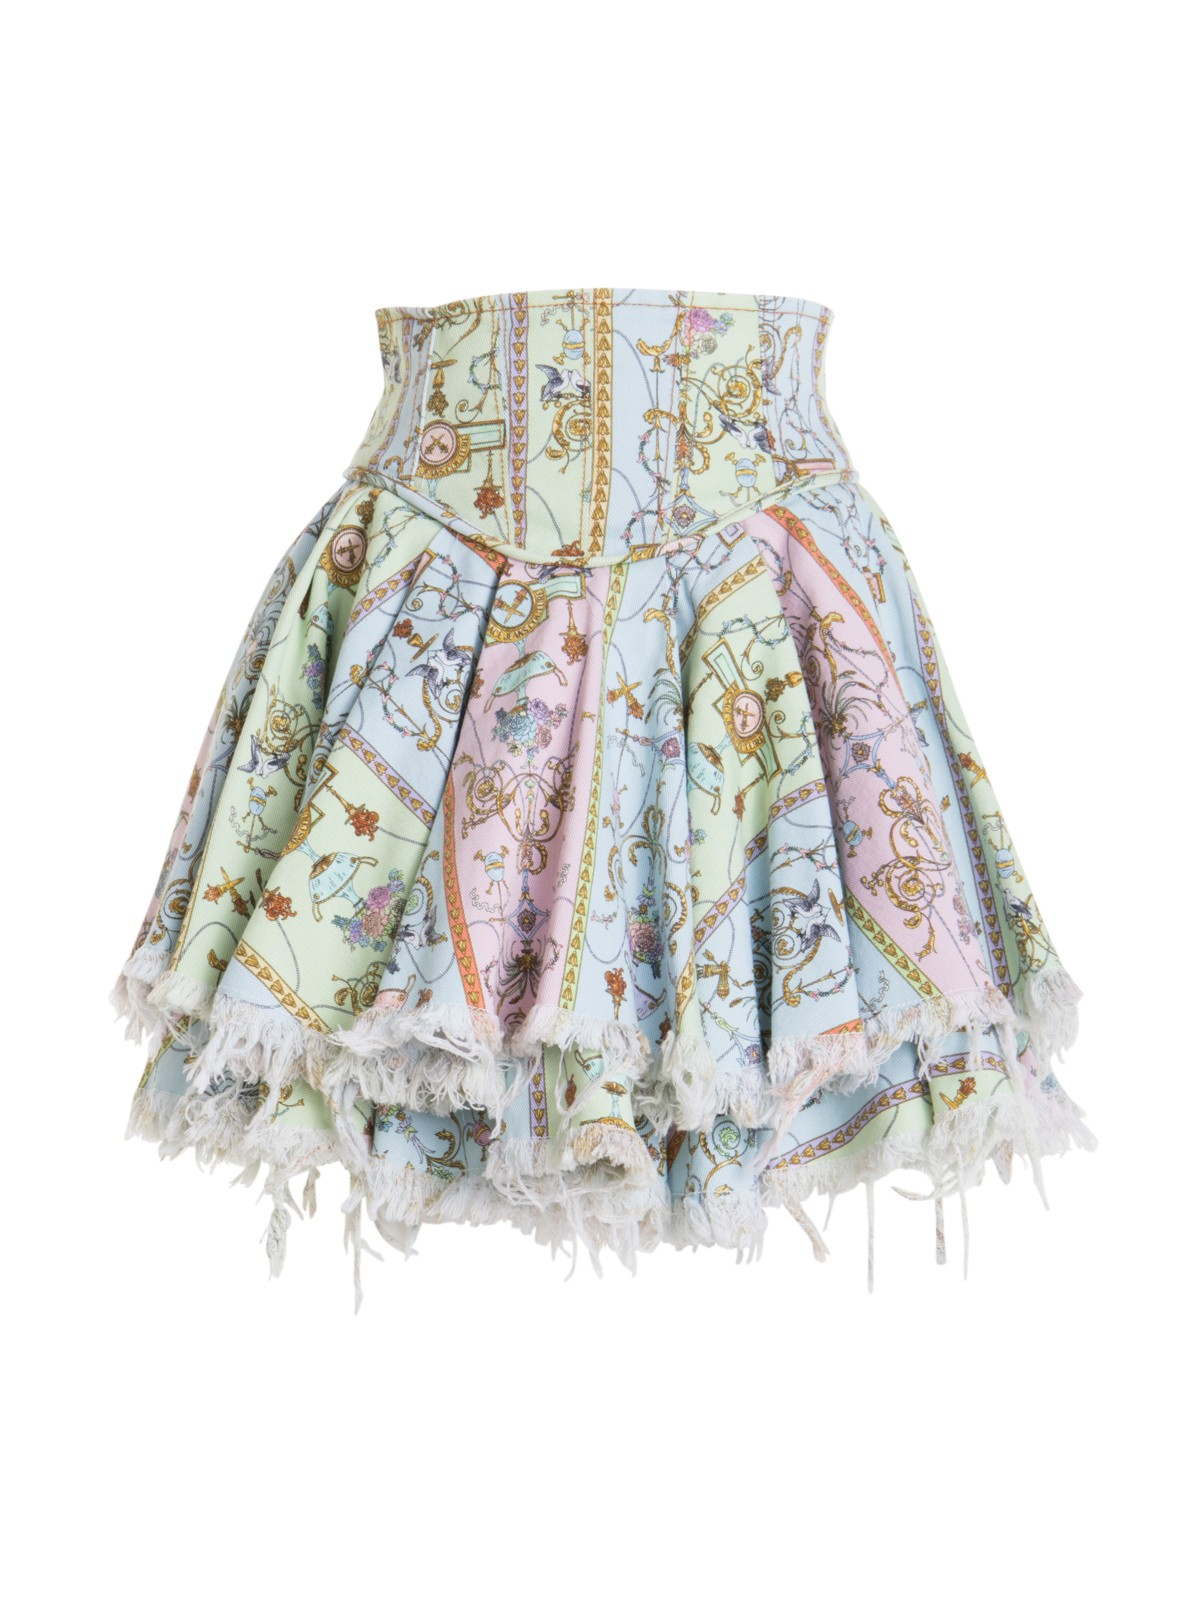 Versace Jeans Couture Clothing SKIRT